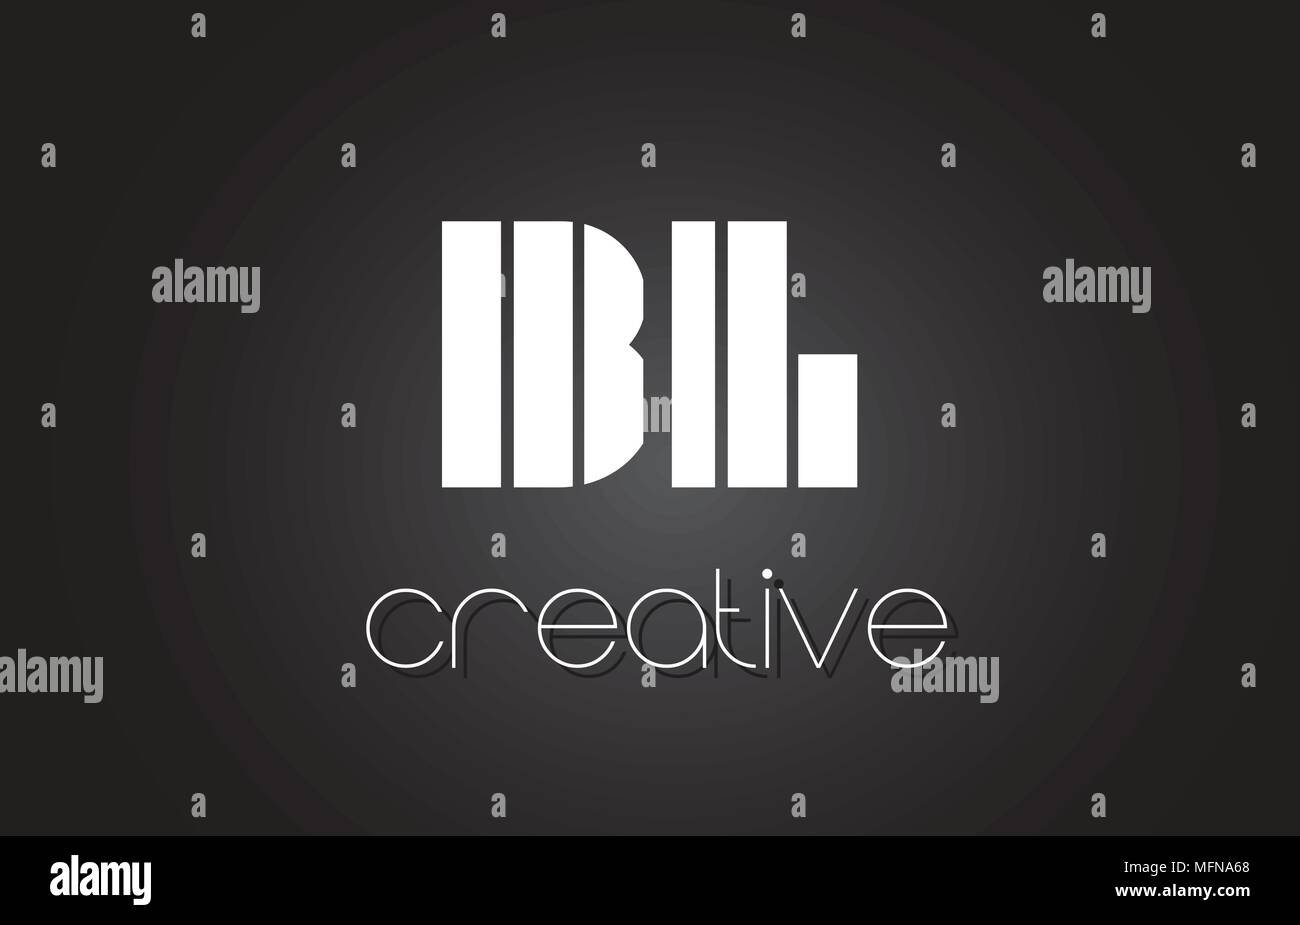 Bl B L Creative Letter Logo Design With White And Black Lines Stock